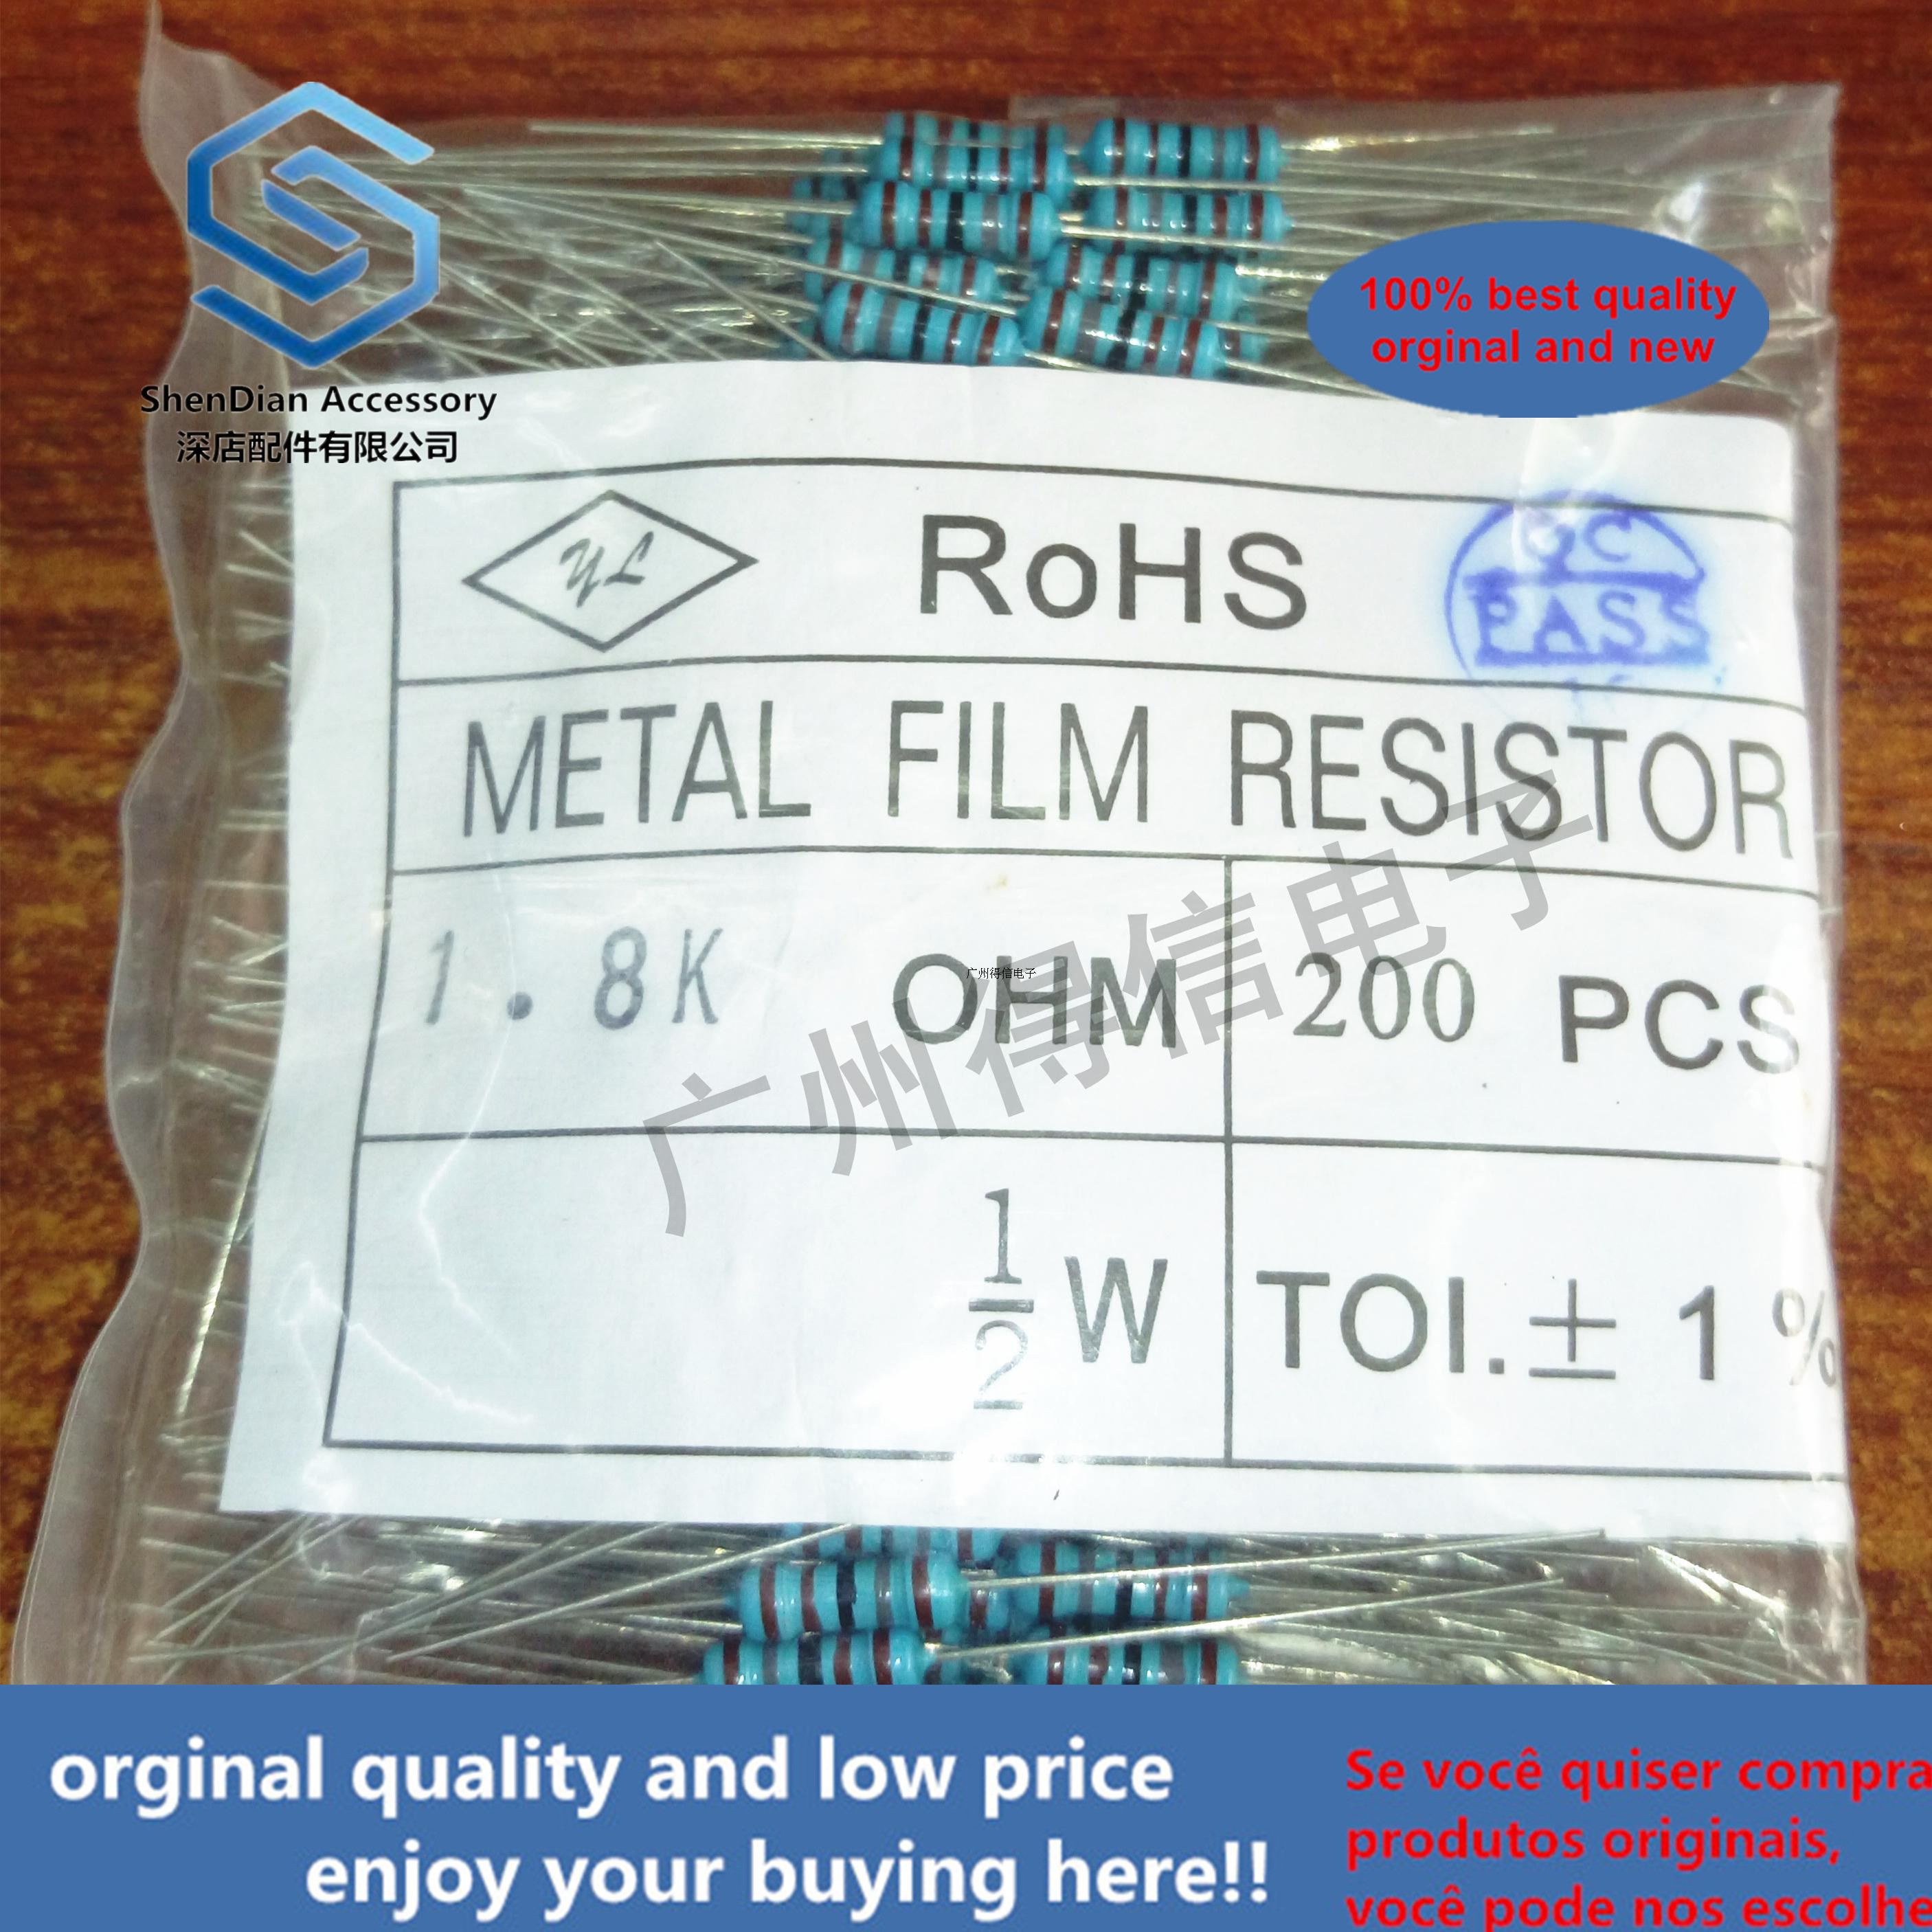 200pcs 1 / 2W 12R 12 Euro 1% Brand New Metal Film Iron Feet Resistor Bag 200 Pcs Per Pack